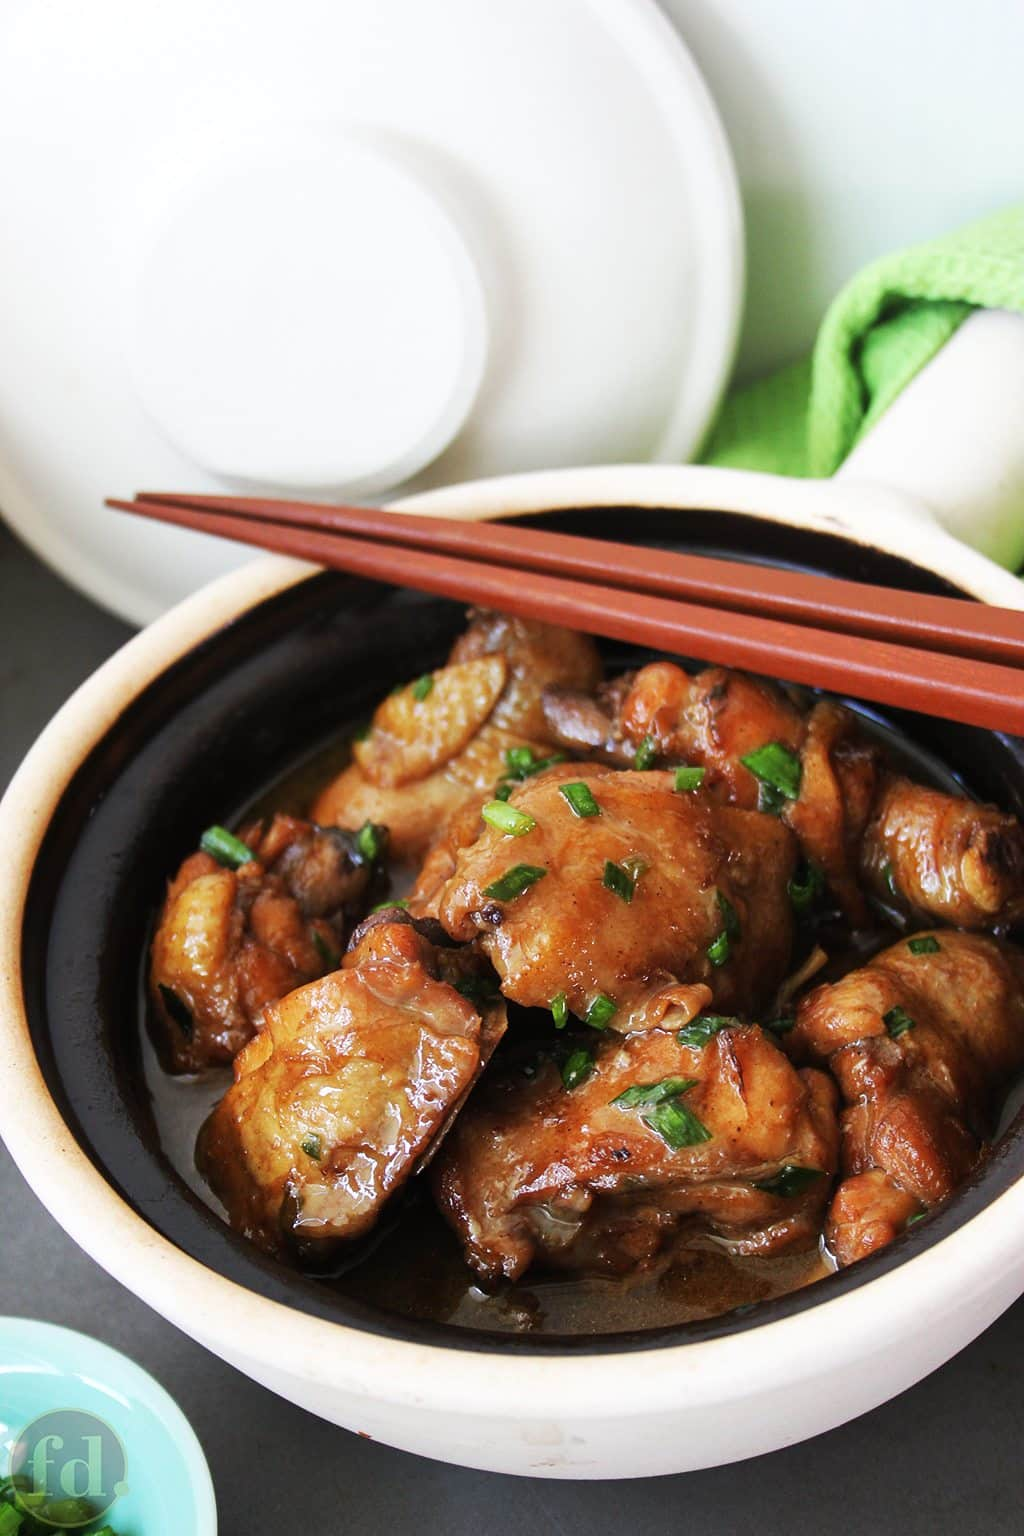 A Chinese dish of braised chicken in oyster sauce